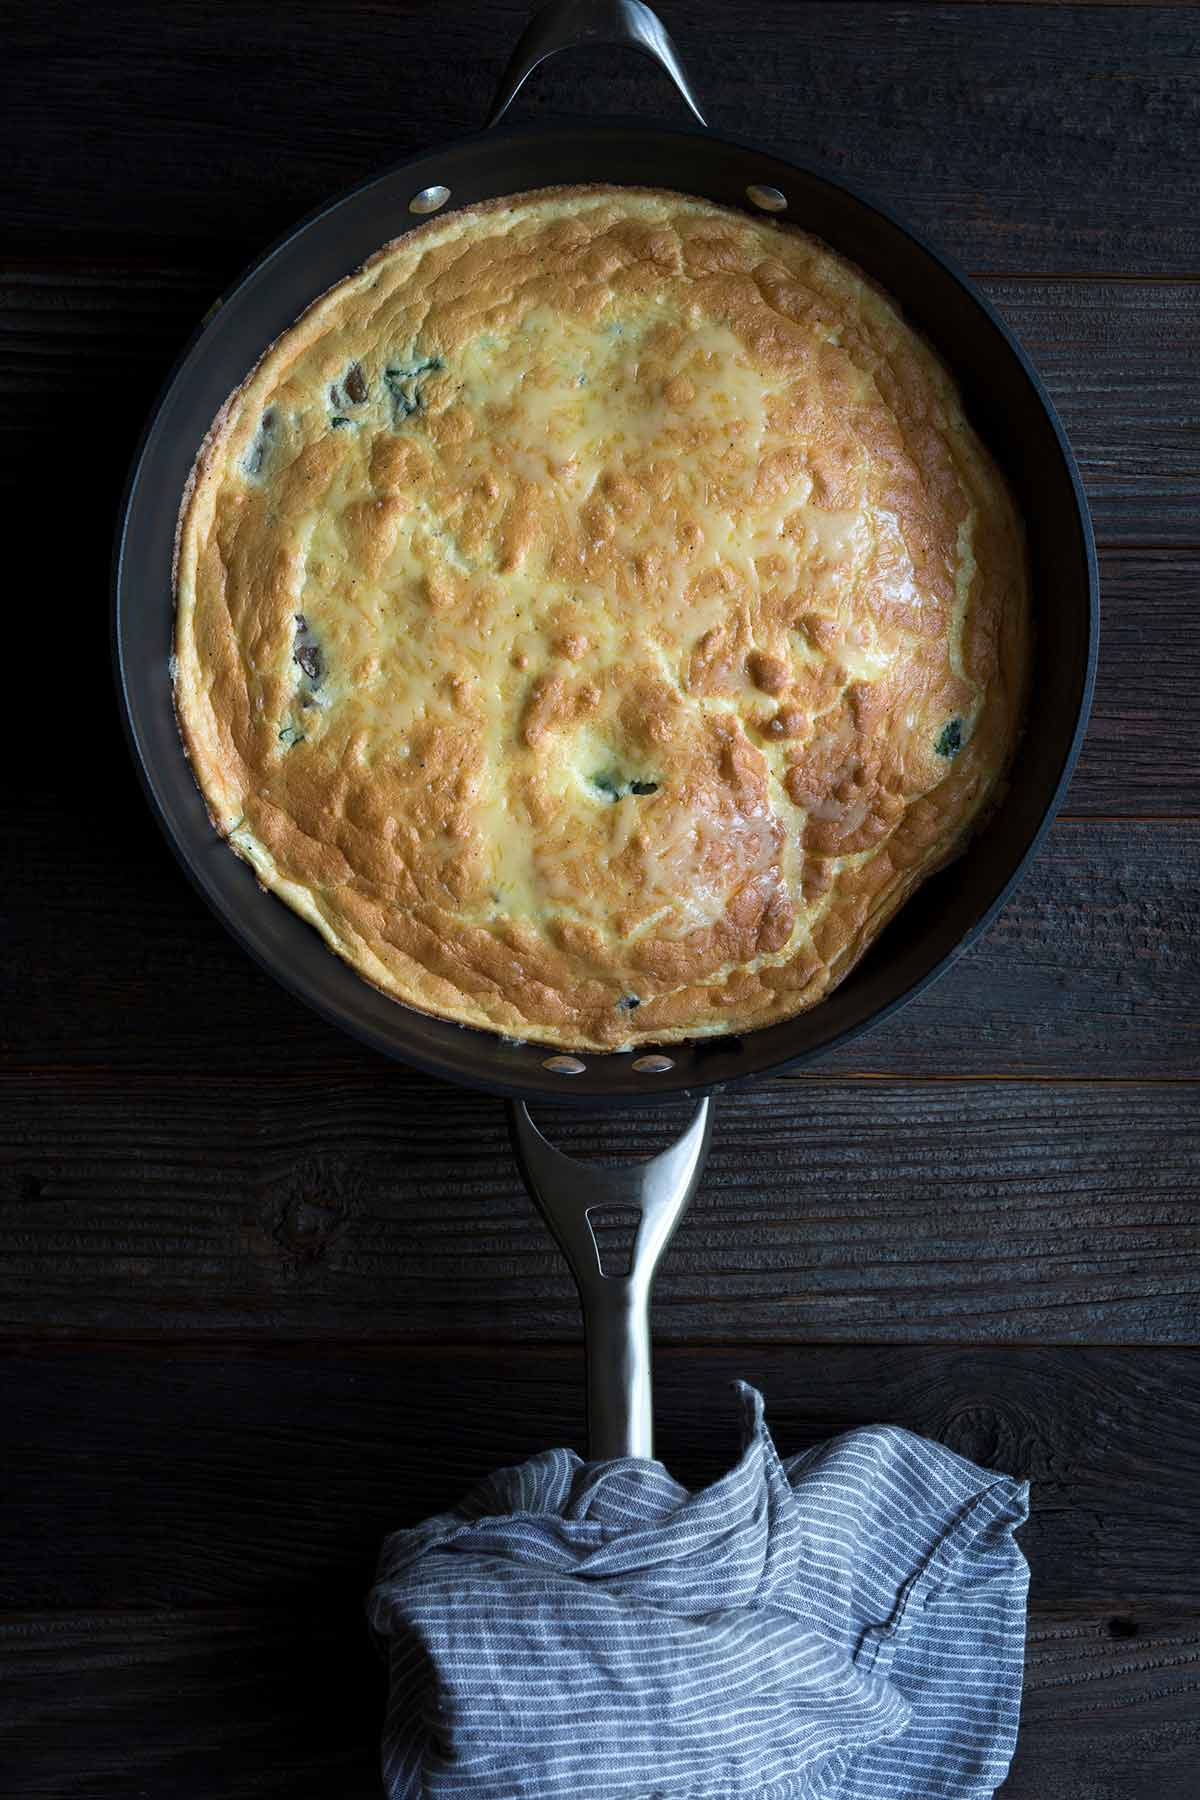 A Swiss, Mushroom and Spinach Frittata in a nonstick skillet.